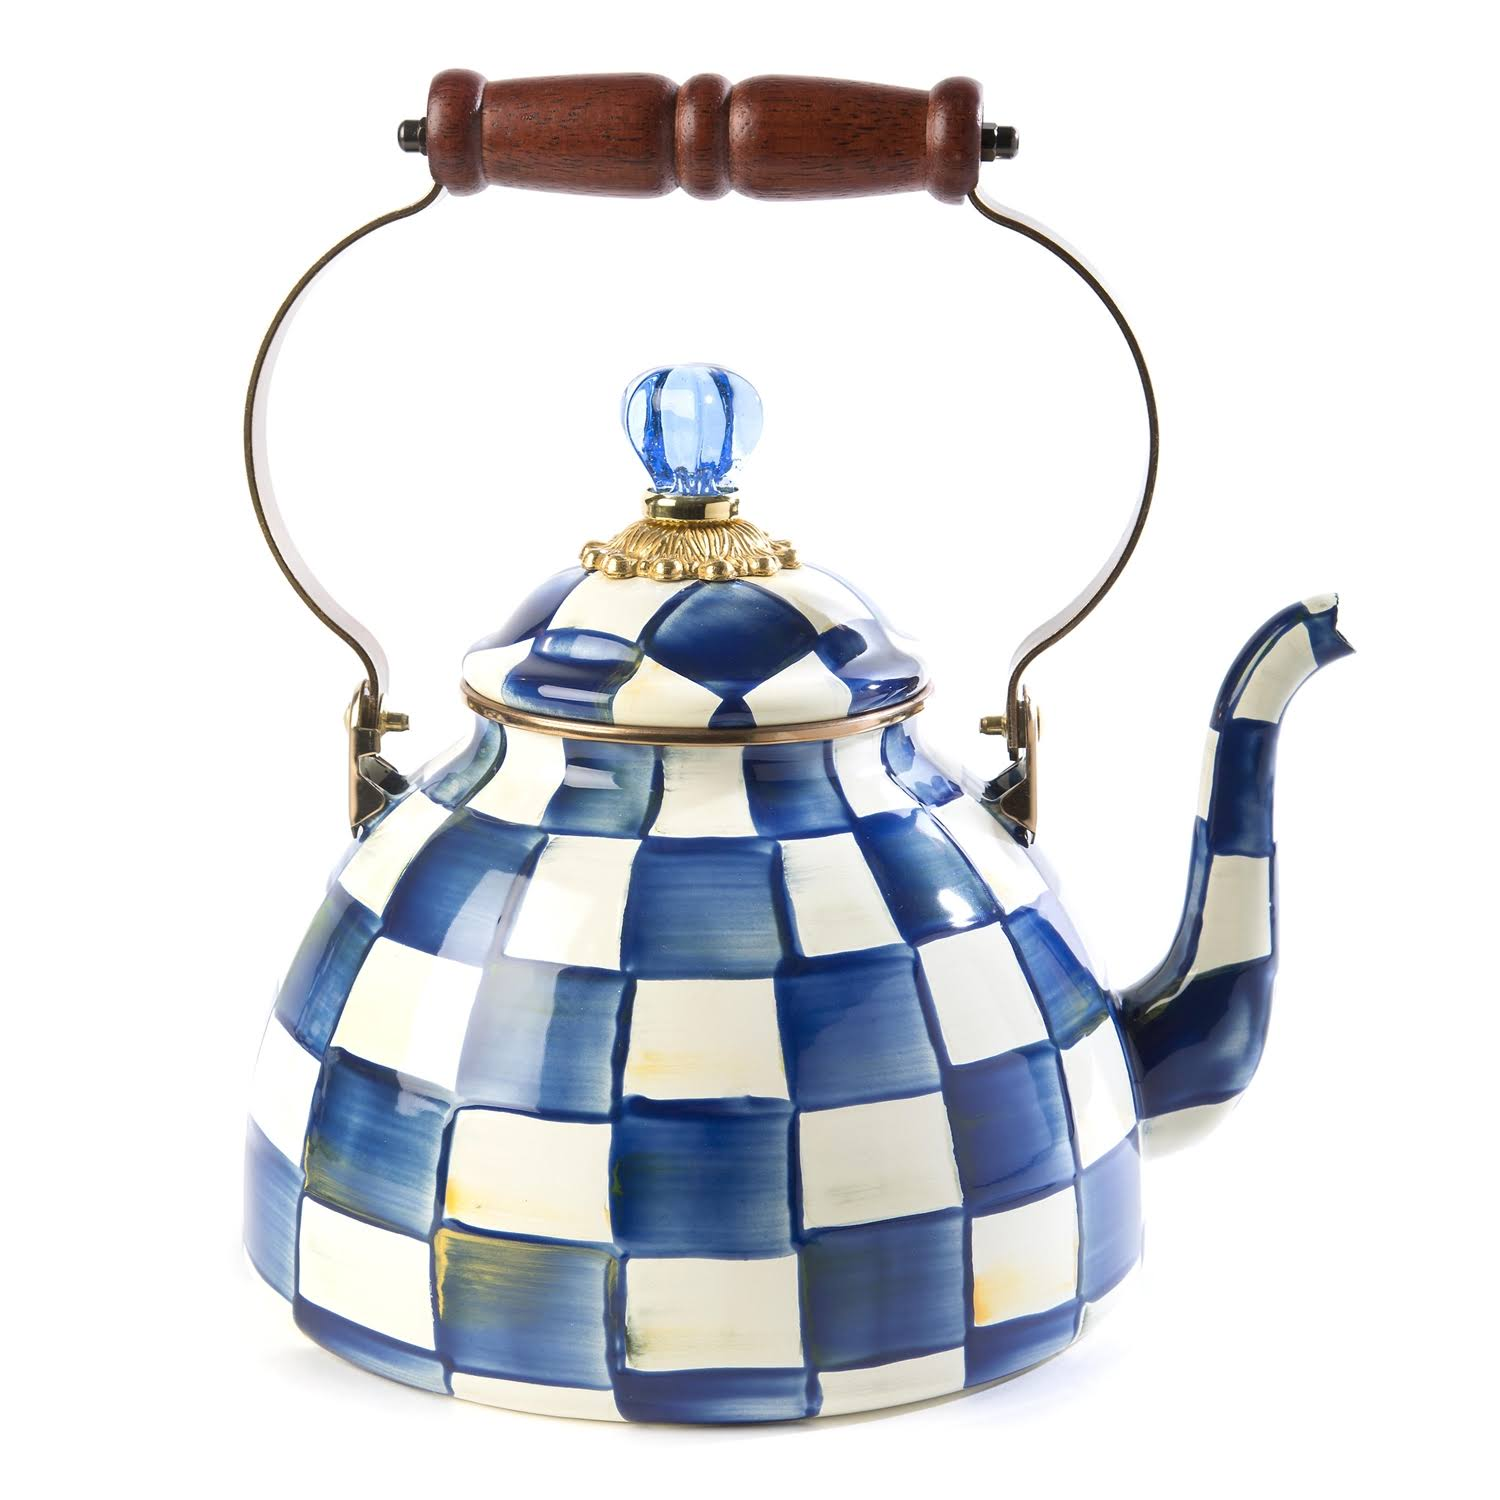 MacKenzie-Childs Royal Check Tea Kettle - 3 Quart